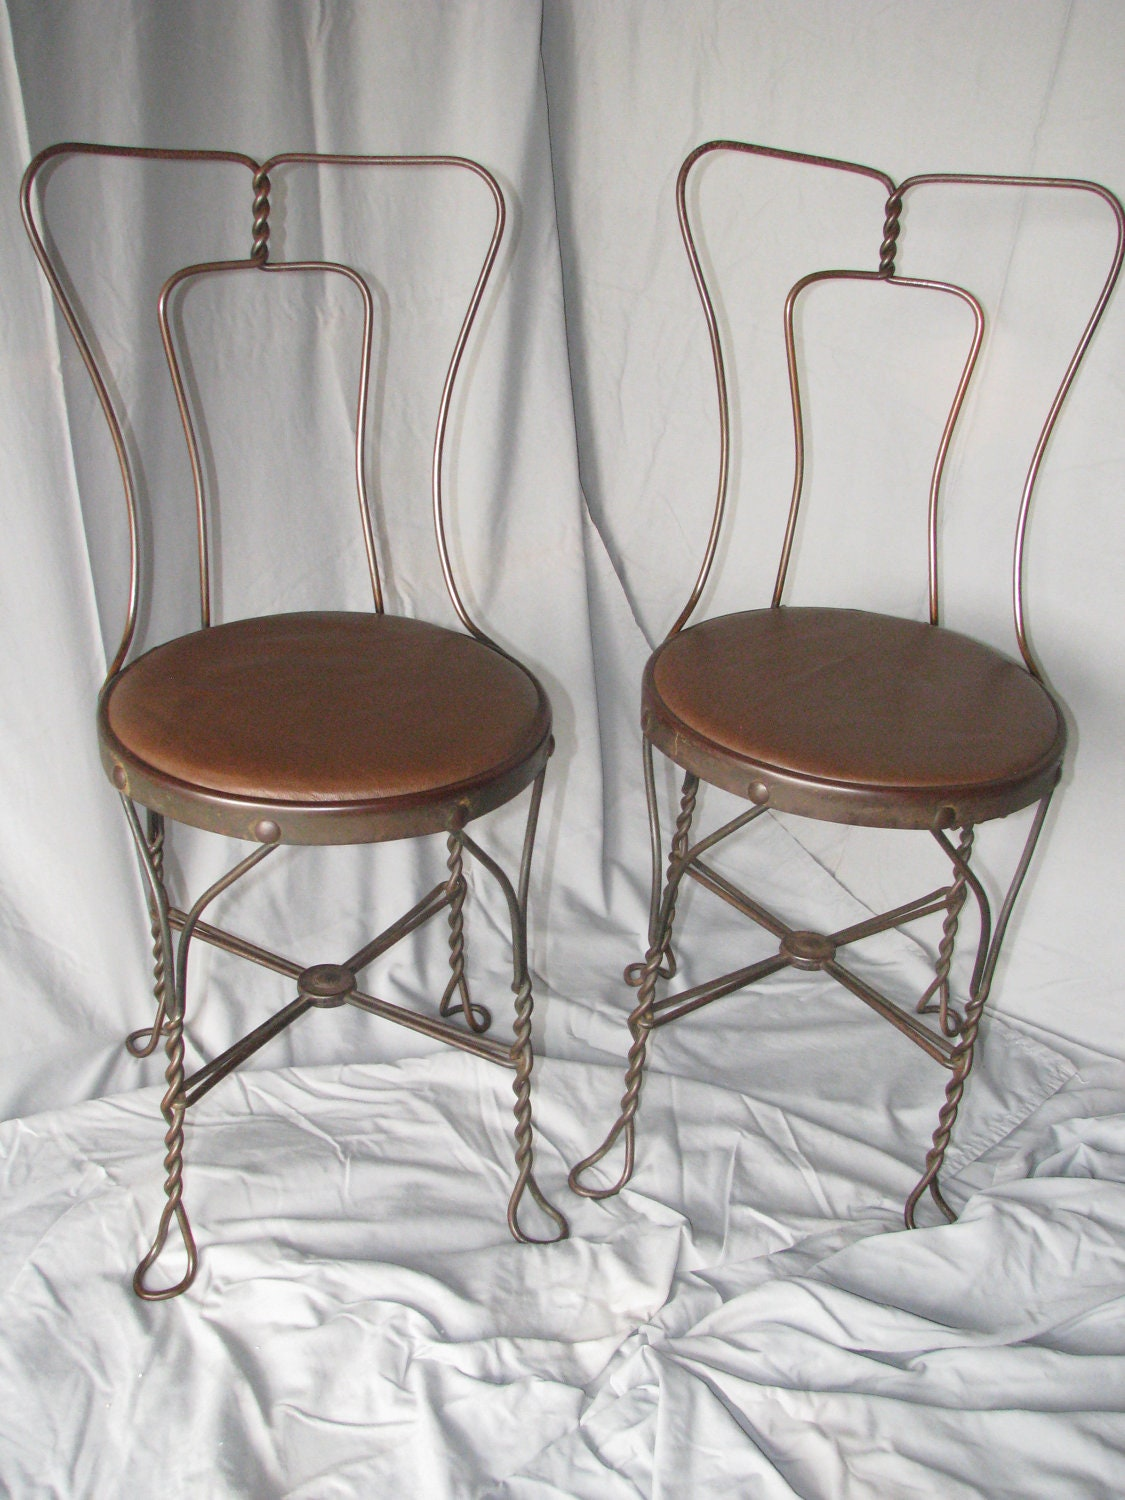 Vintage Ice Cream Parlor Chairs